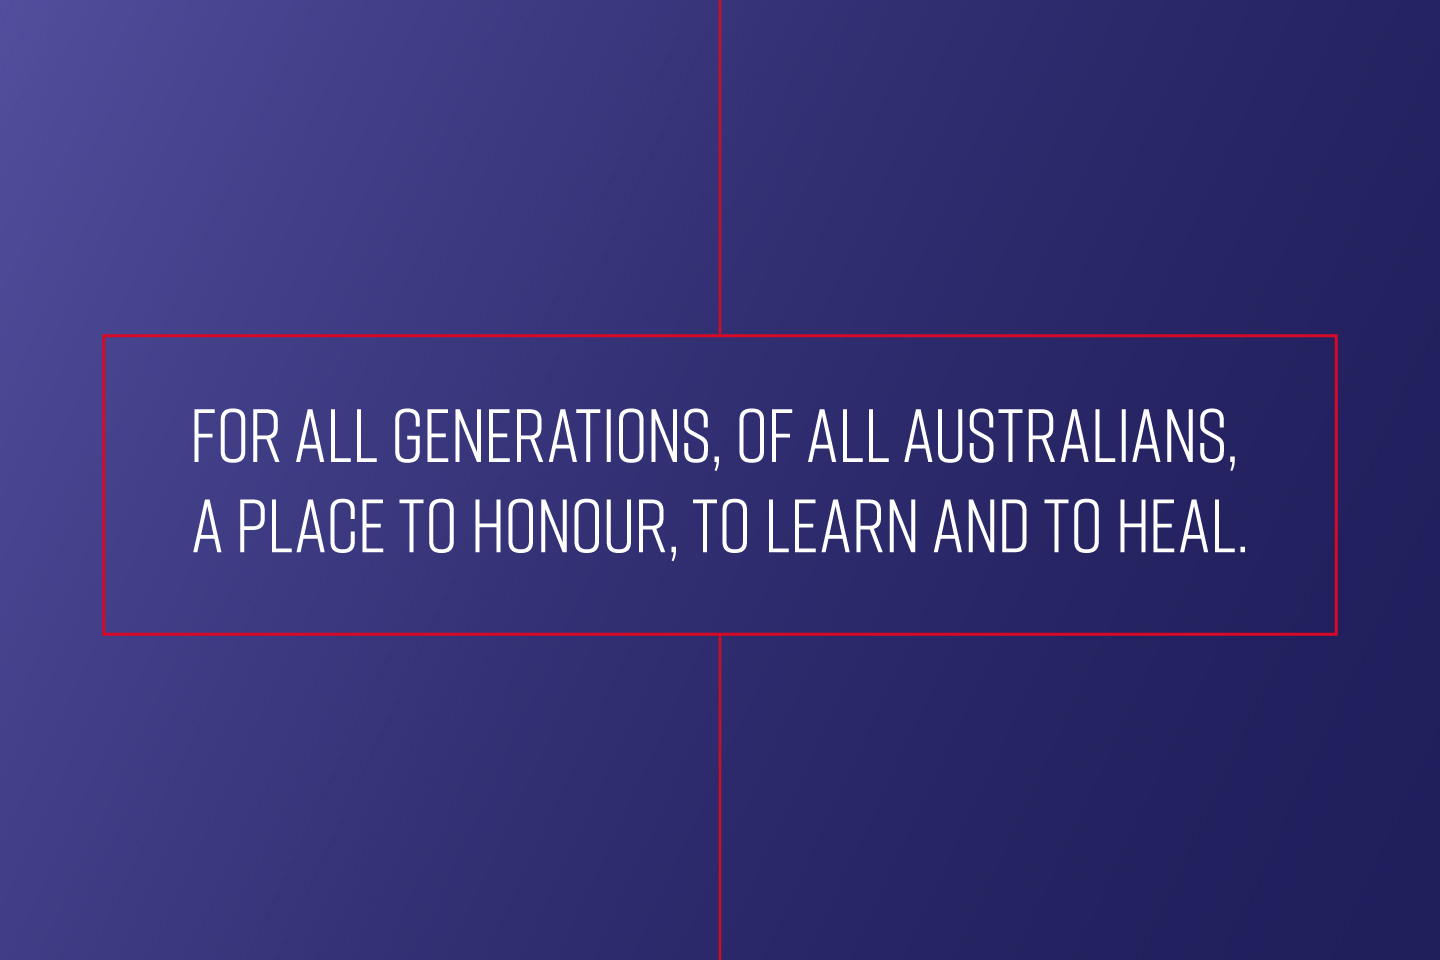 For all generations, of all Australians, a place to honour, to learn and to heal.